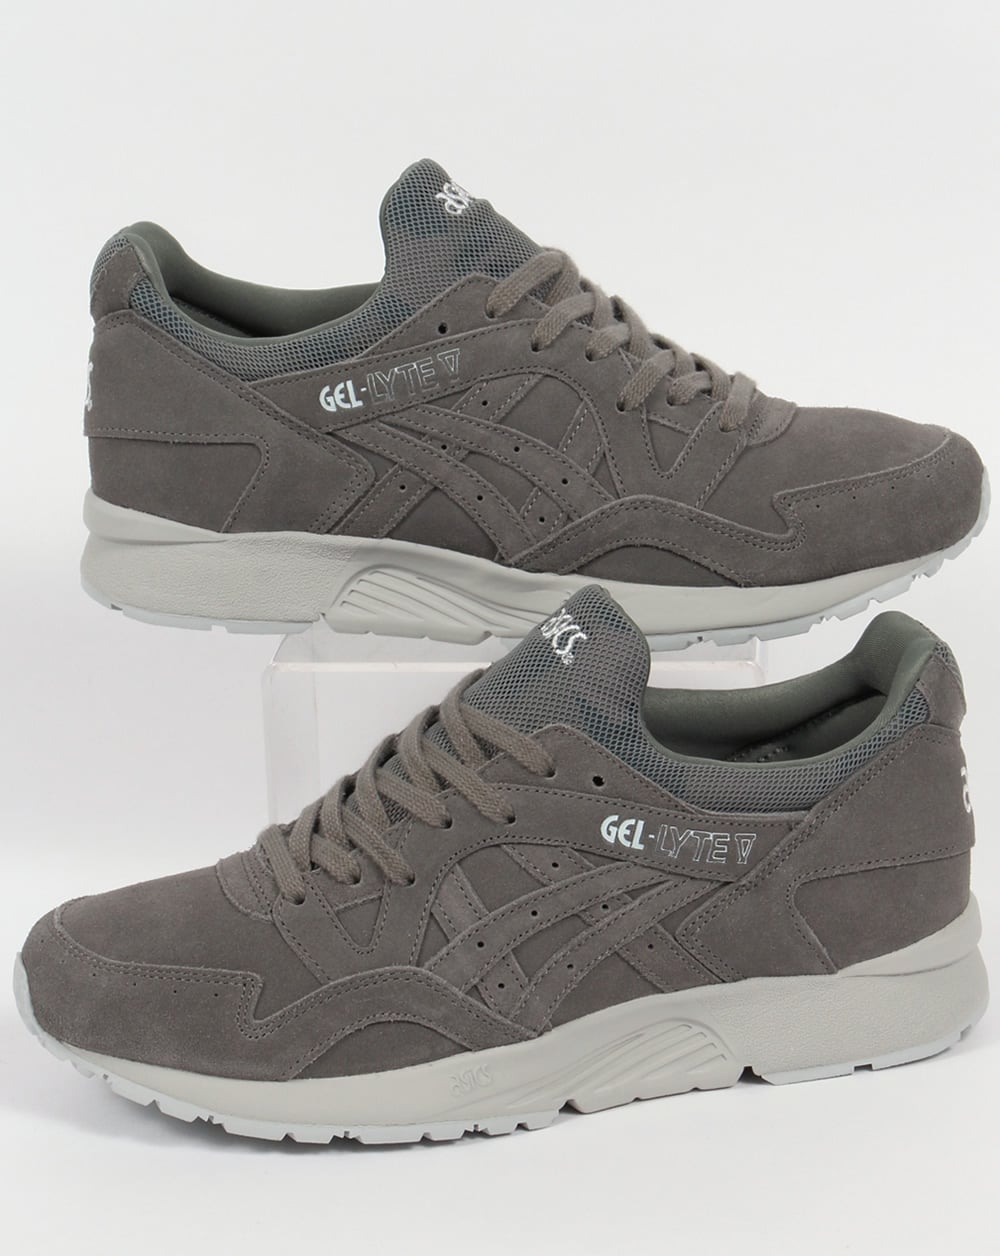 reputable site 18611 9b32a Asics Gel Lyte V Trainers Agave Grey